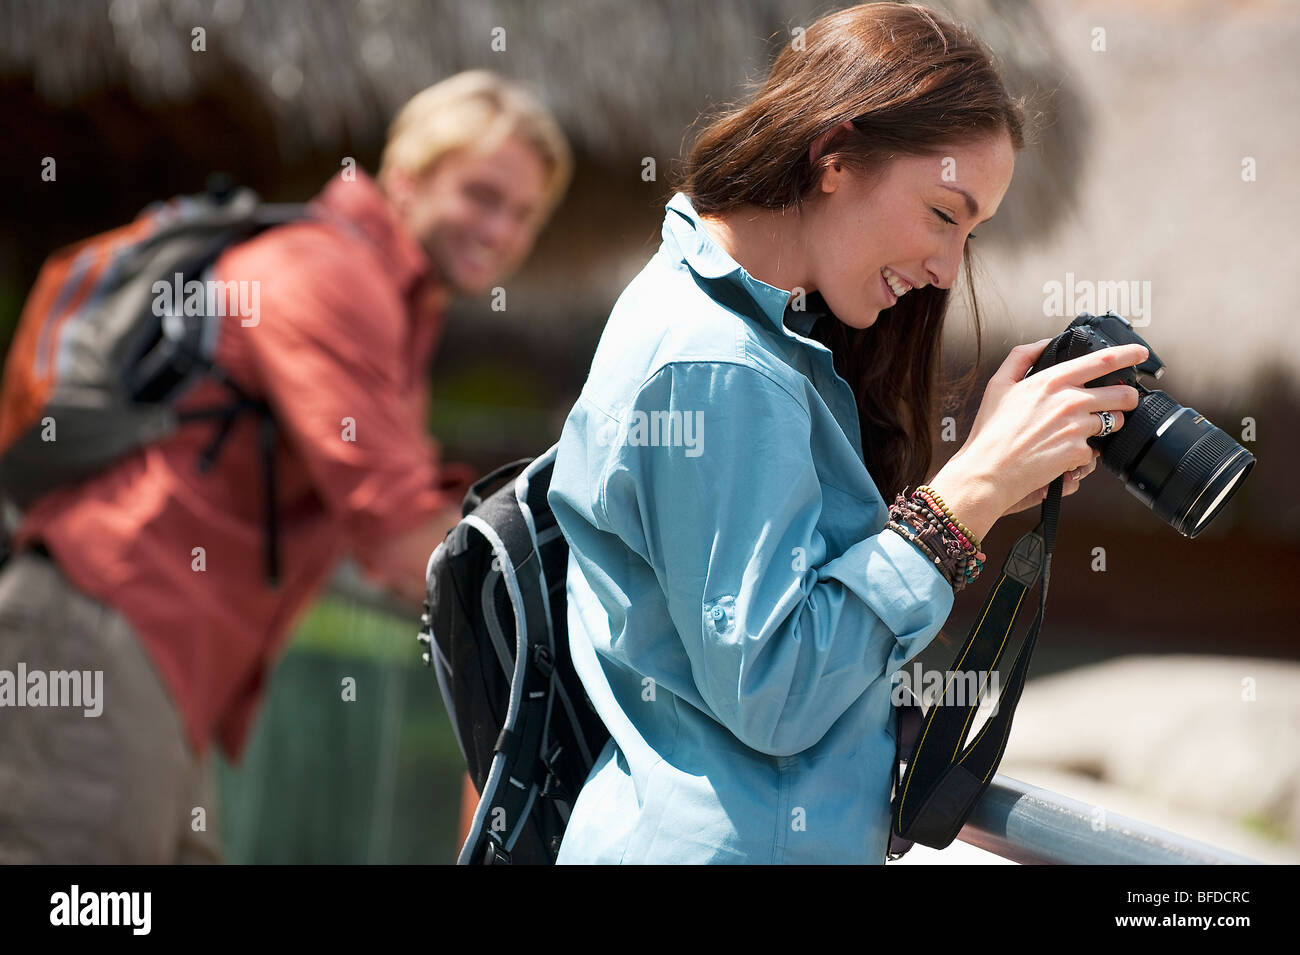 A couple take photos in Everglades National Park, Florida. - Stock Image